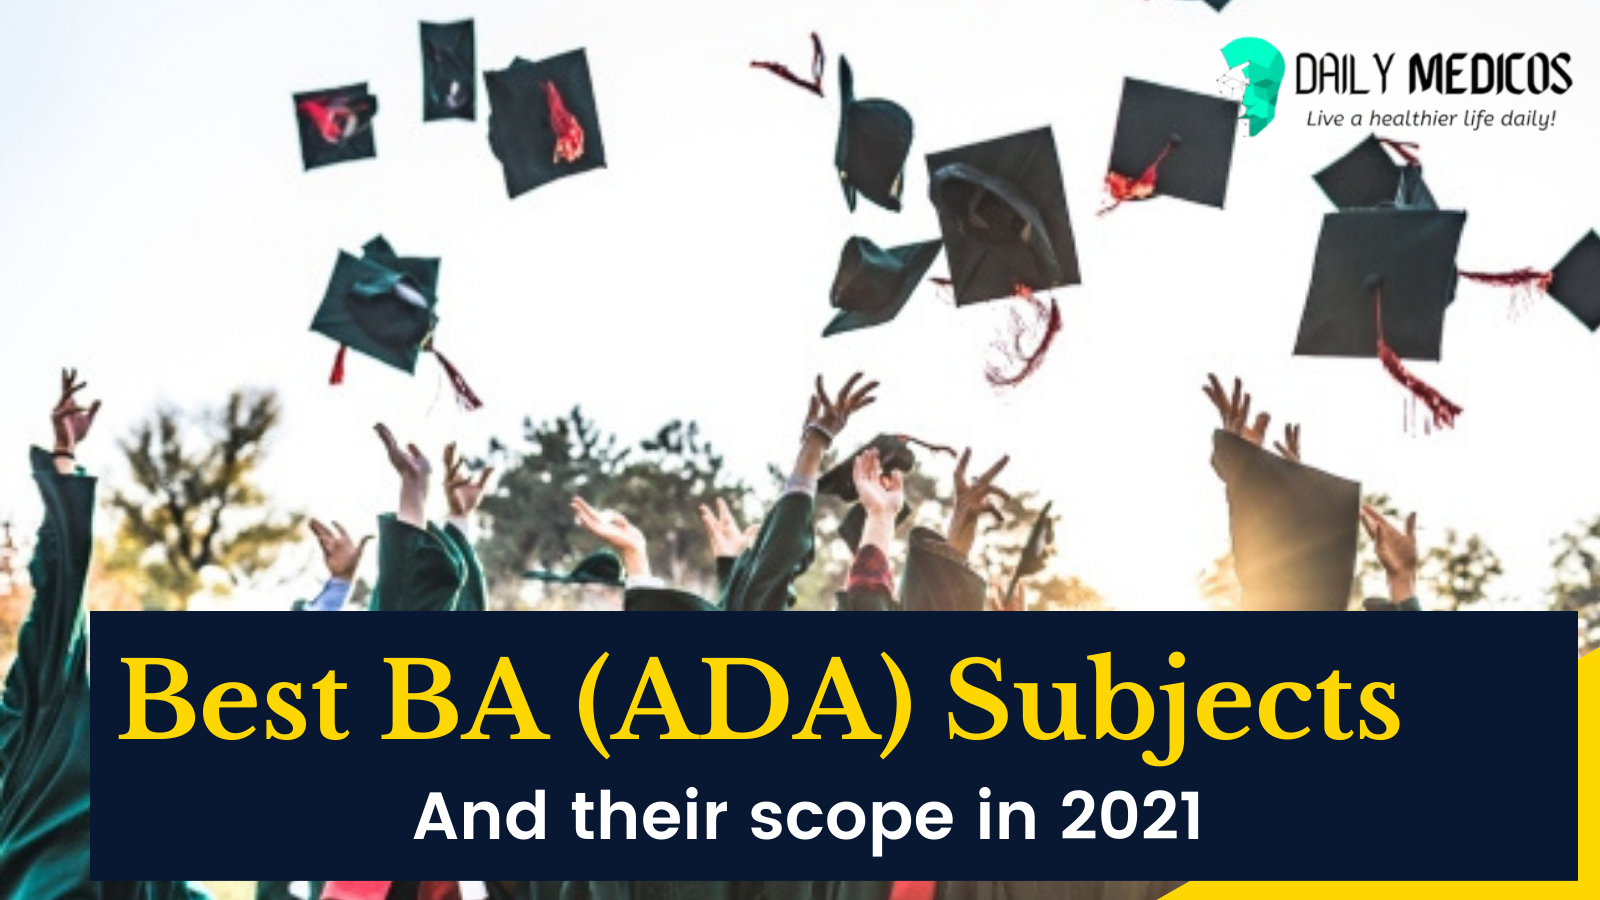 Best BA (ADA) subjects combinations with scope 2021 20 - Daily Medicos